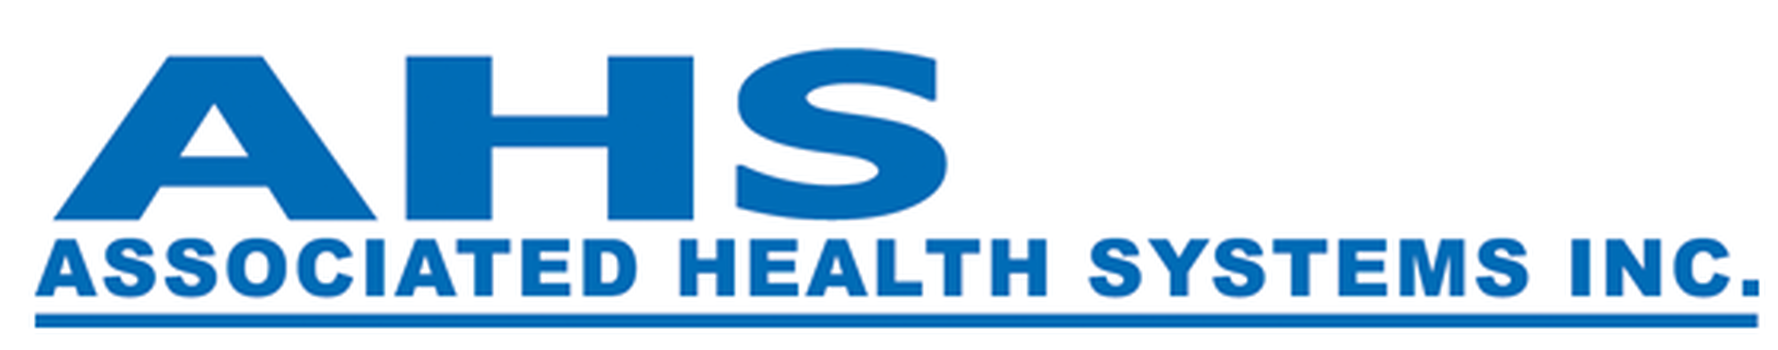 Associated Health Systems Inc. logo